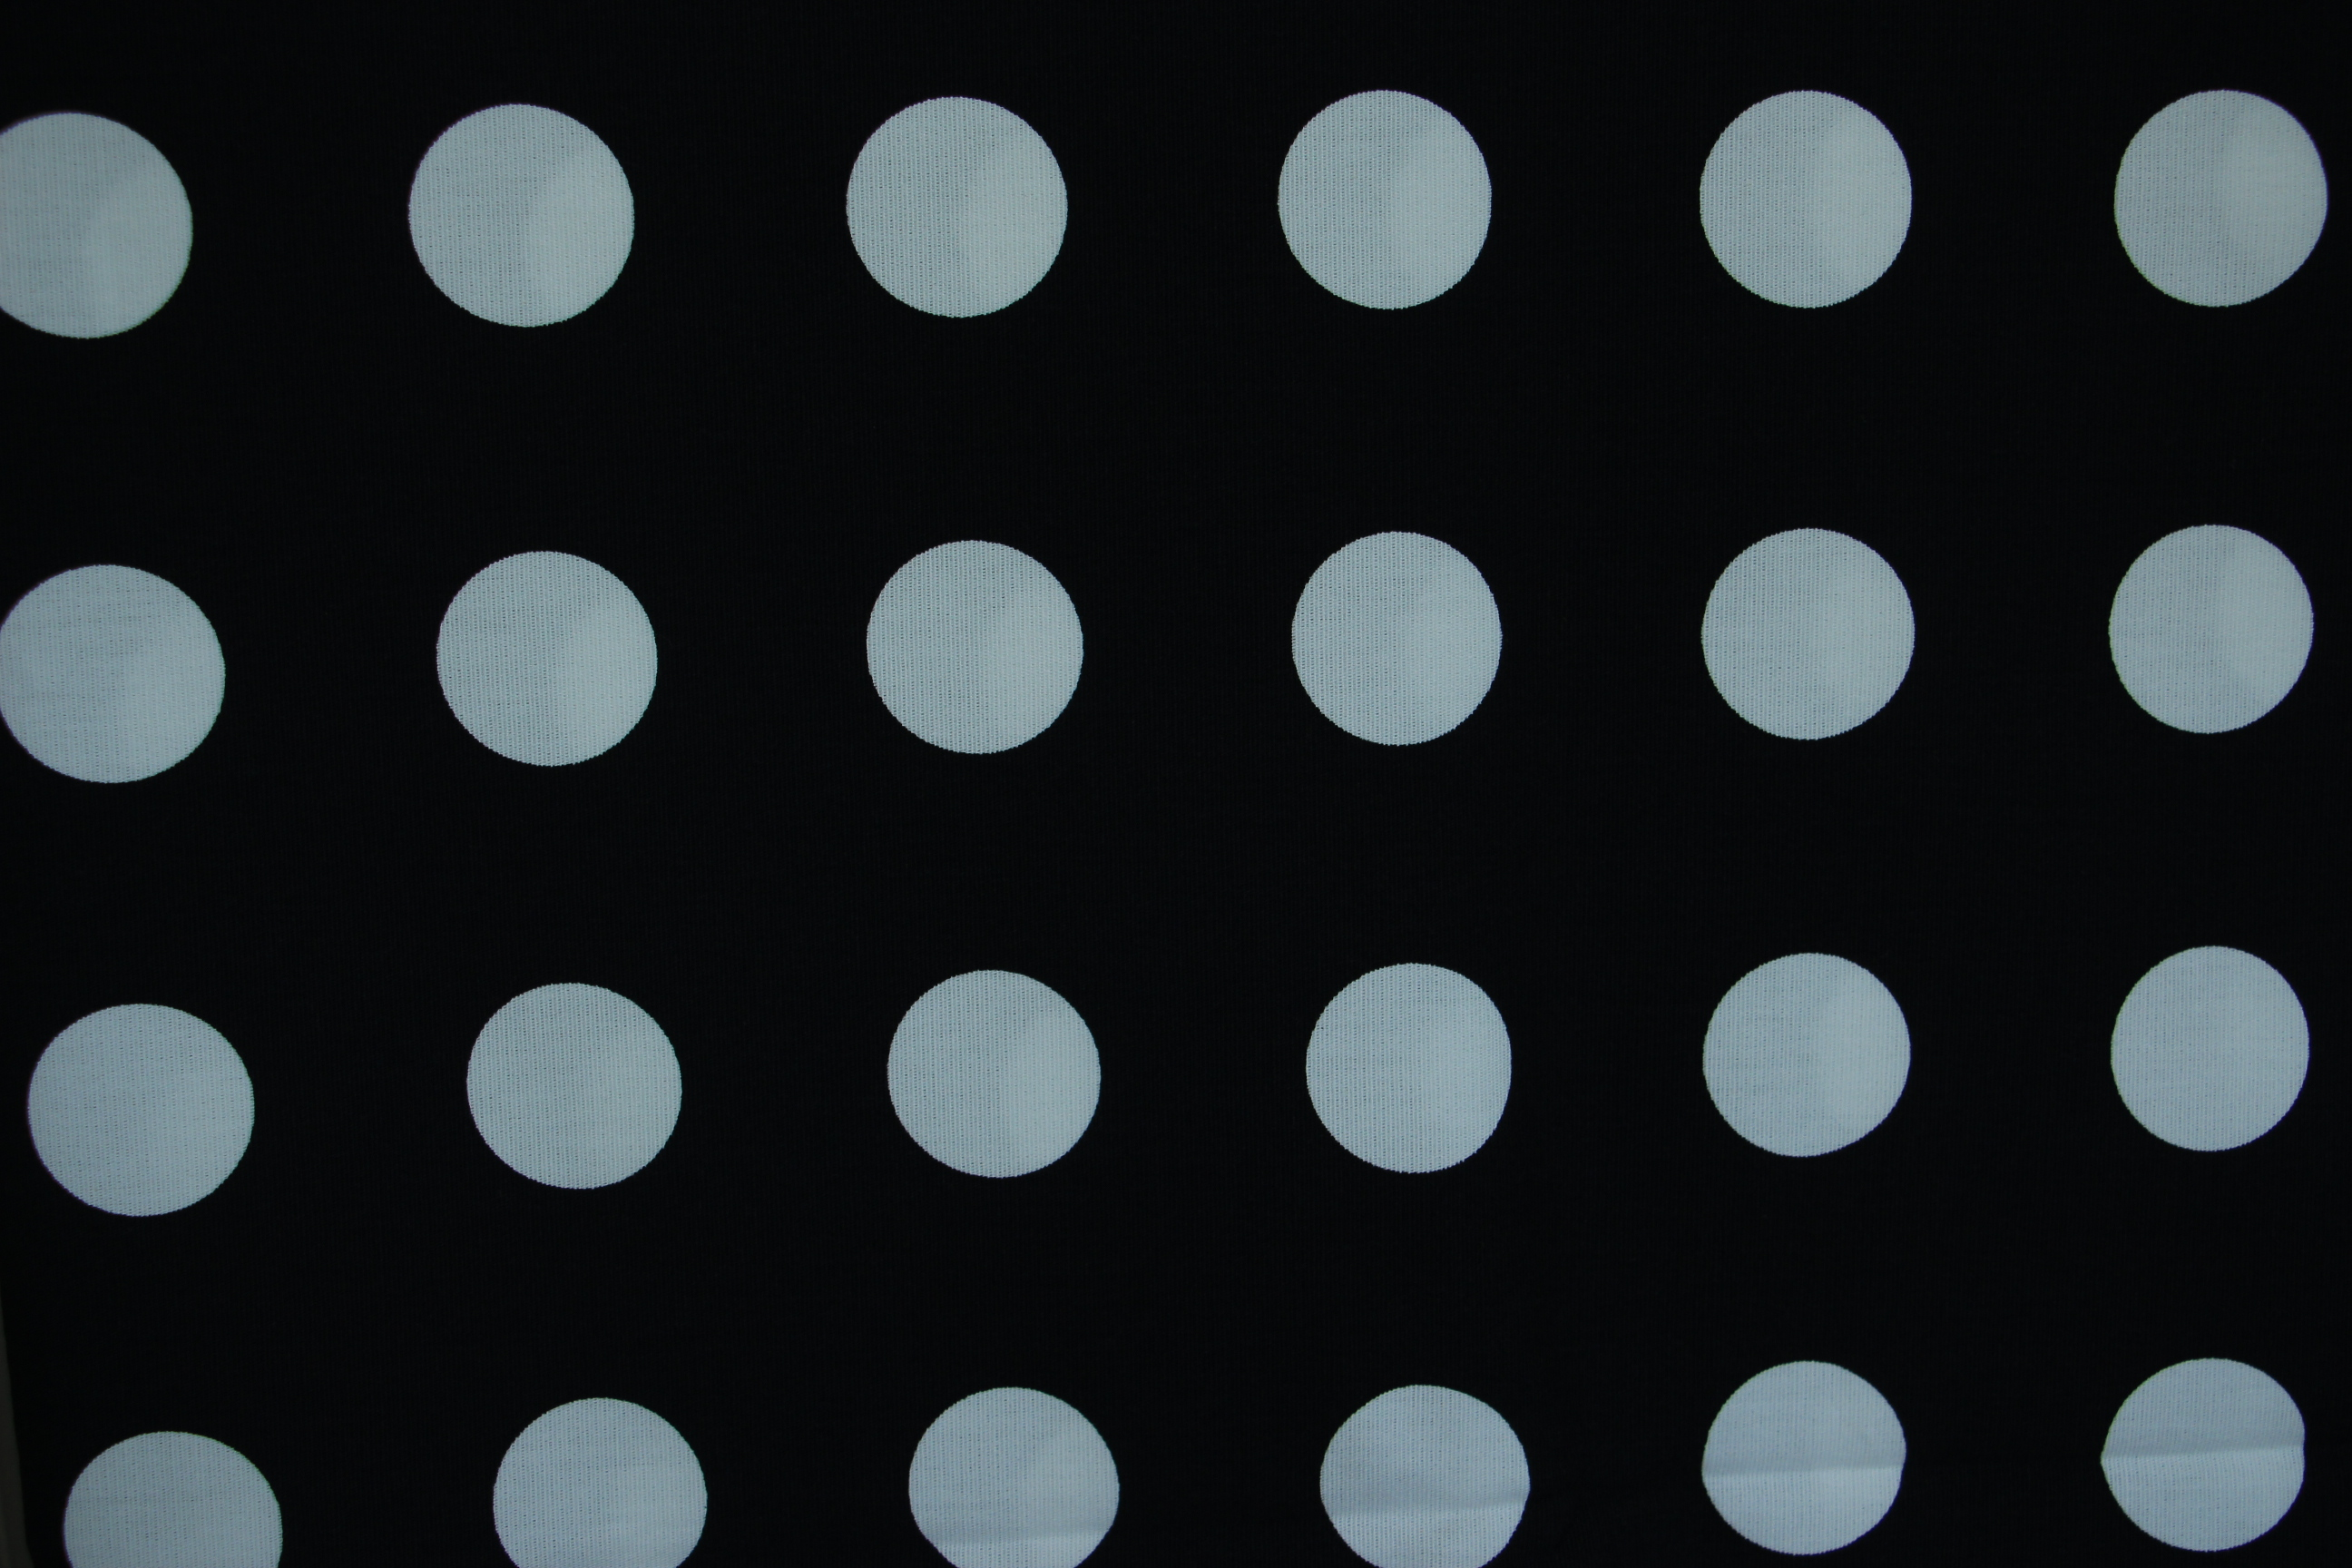 Black & White Polka Dots.JPG